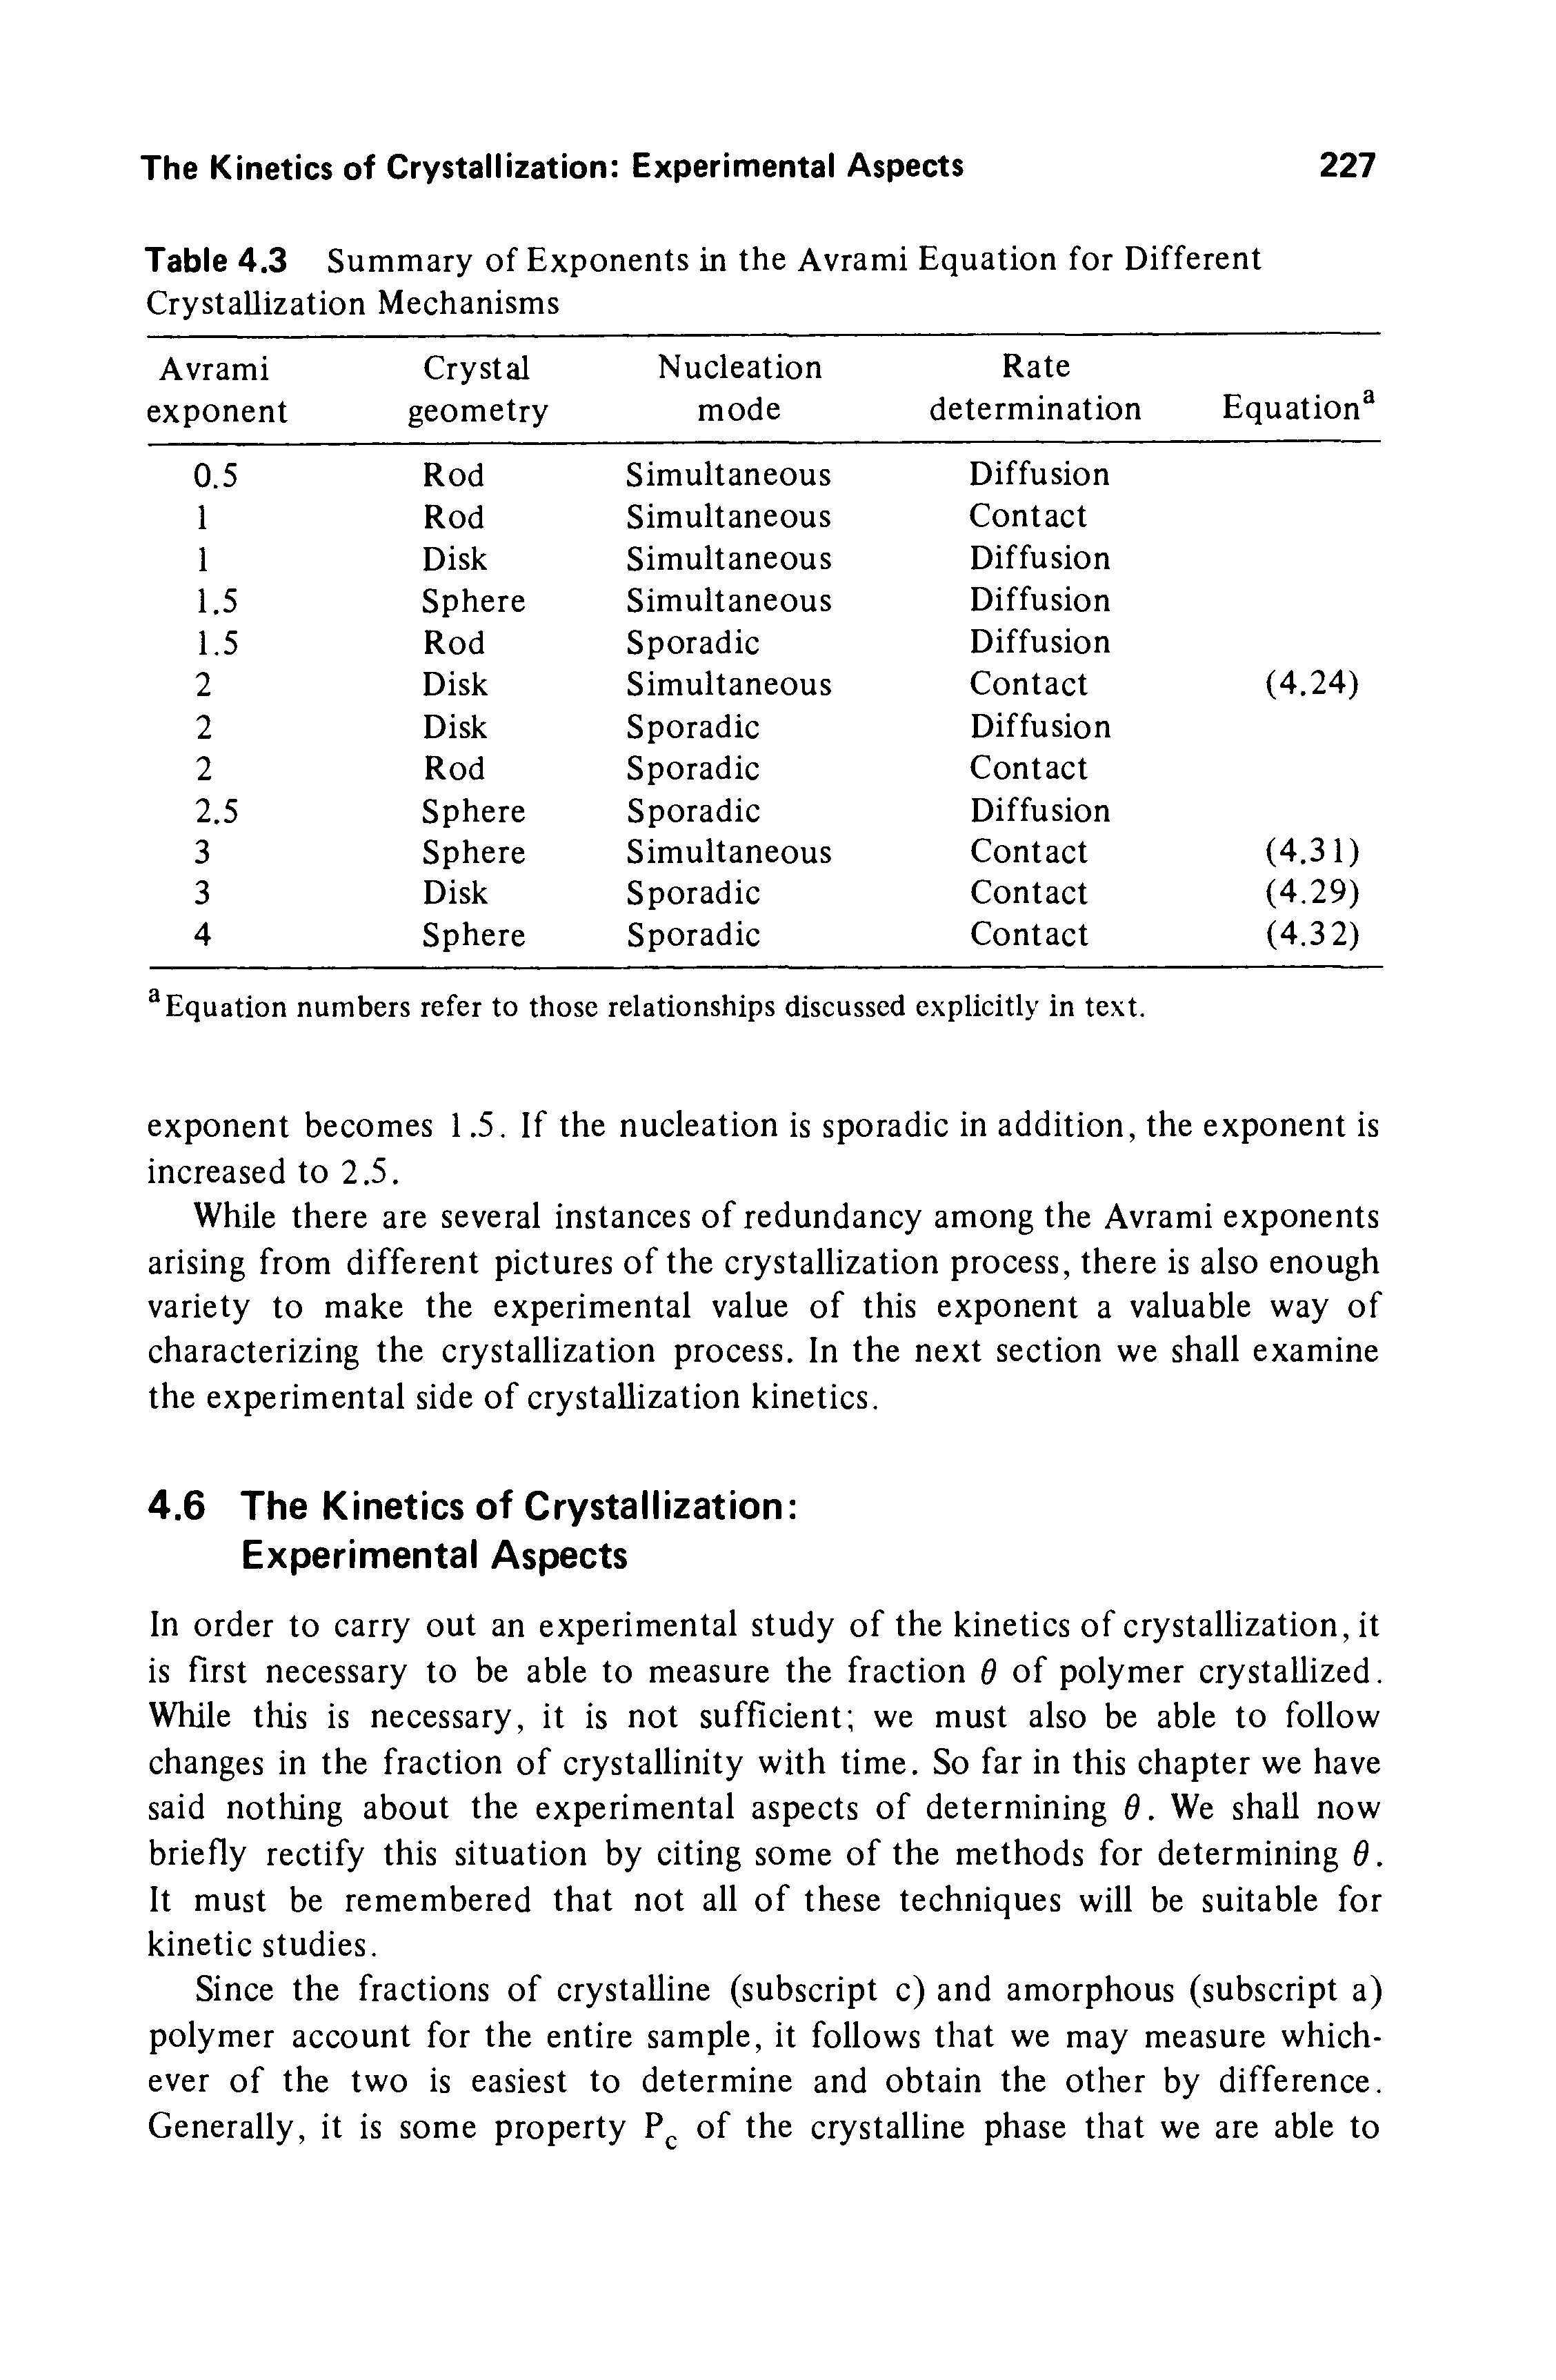 Table 4.3 Summary of Exponents in the Avrami Equation for Different Crystallization Mechanisms